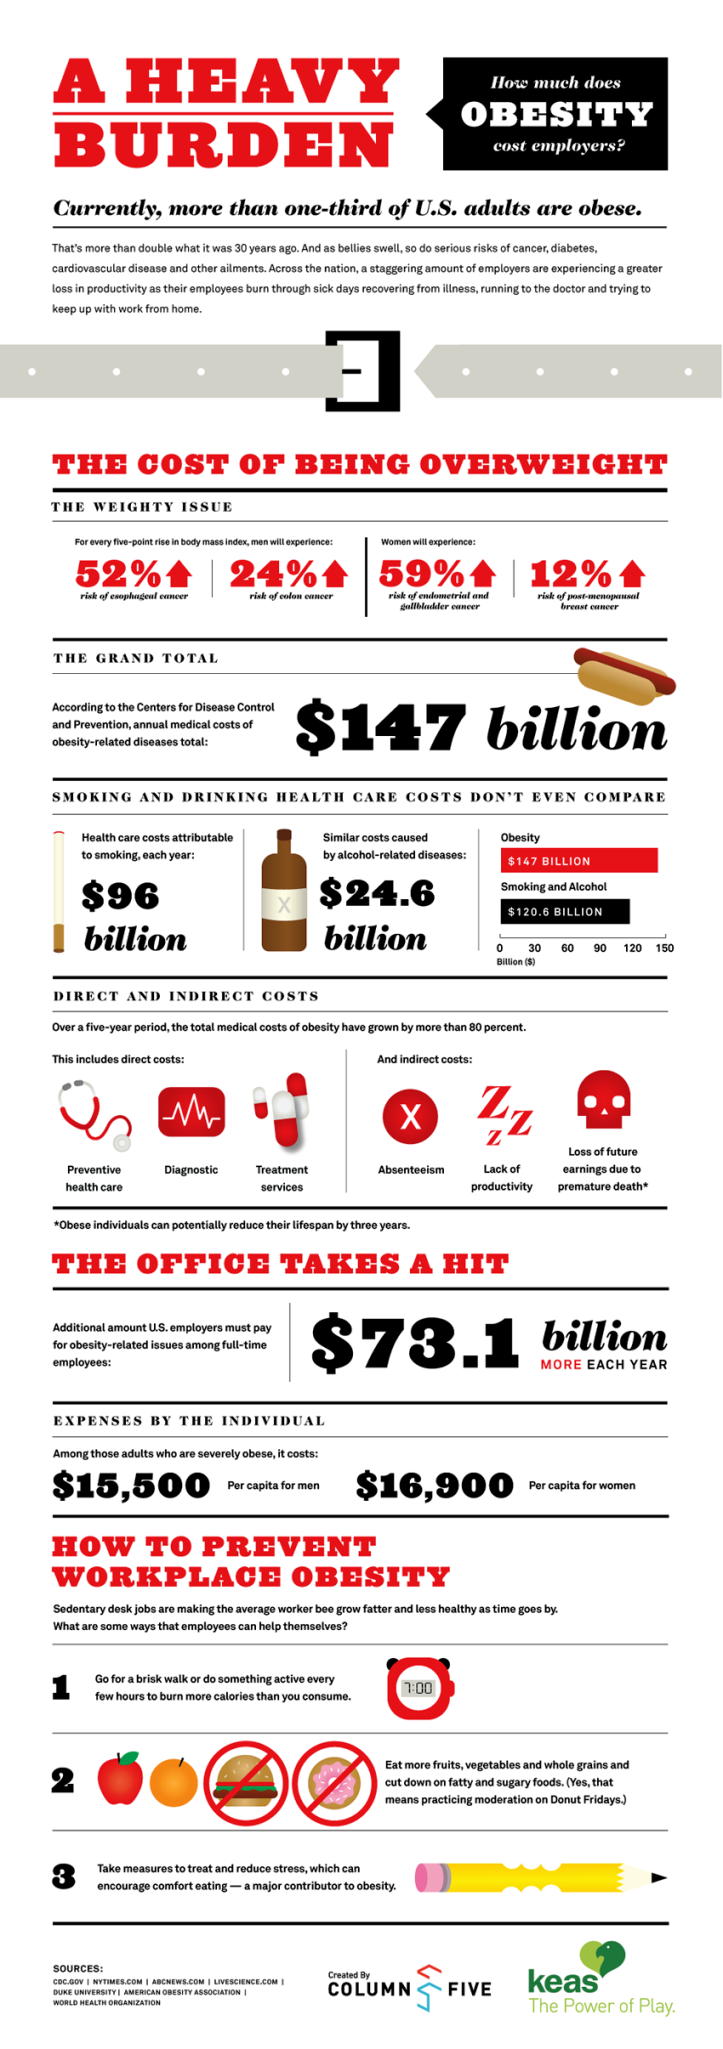 How much does obesity cost employers? #infographic